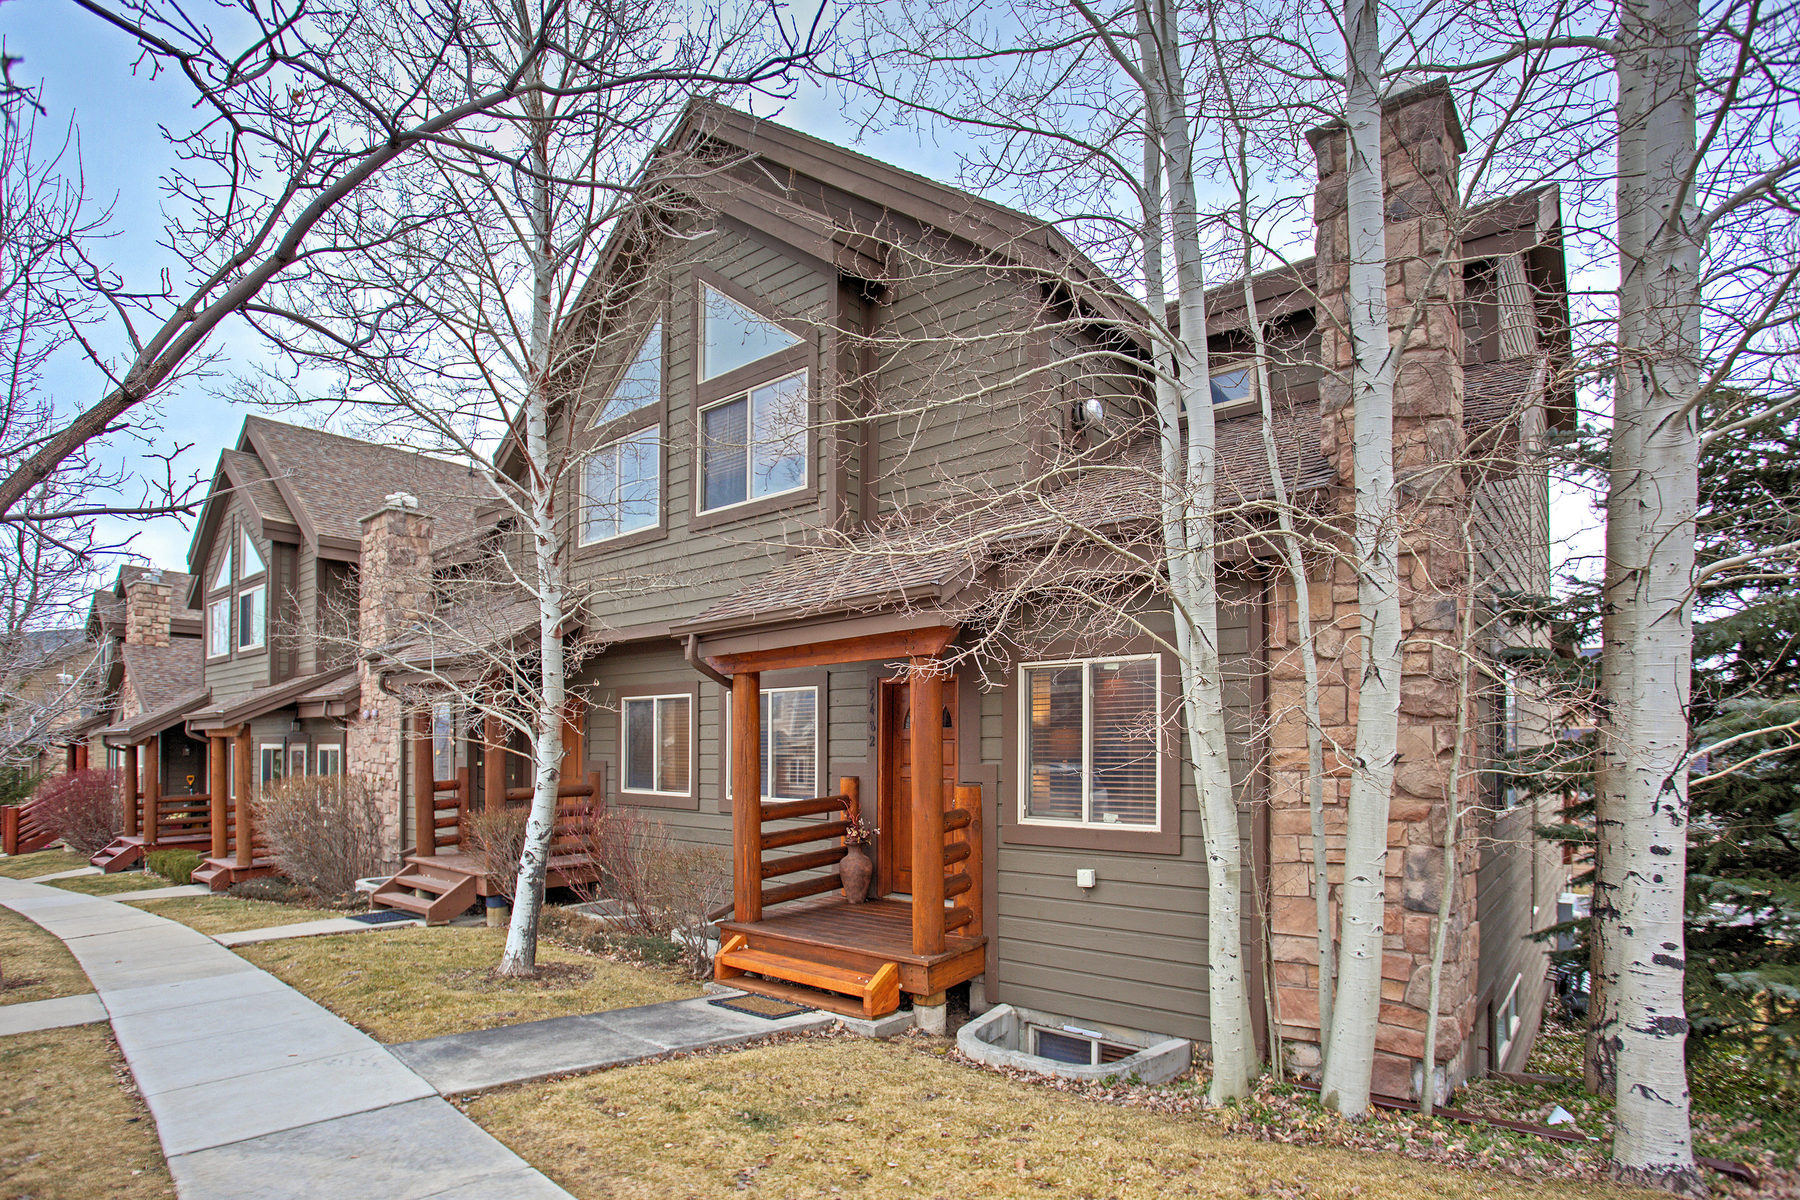 Townhouse for Sale at Bright 5 Bdrm End Unit in Bear Hollow 5482 N Bobsled Blvd #T-18 Park City, Utah 84098 United States